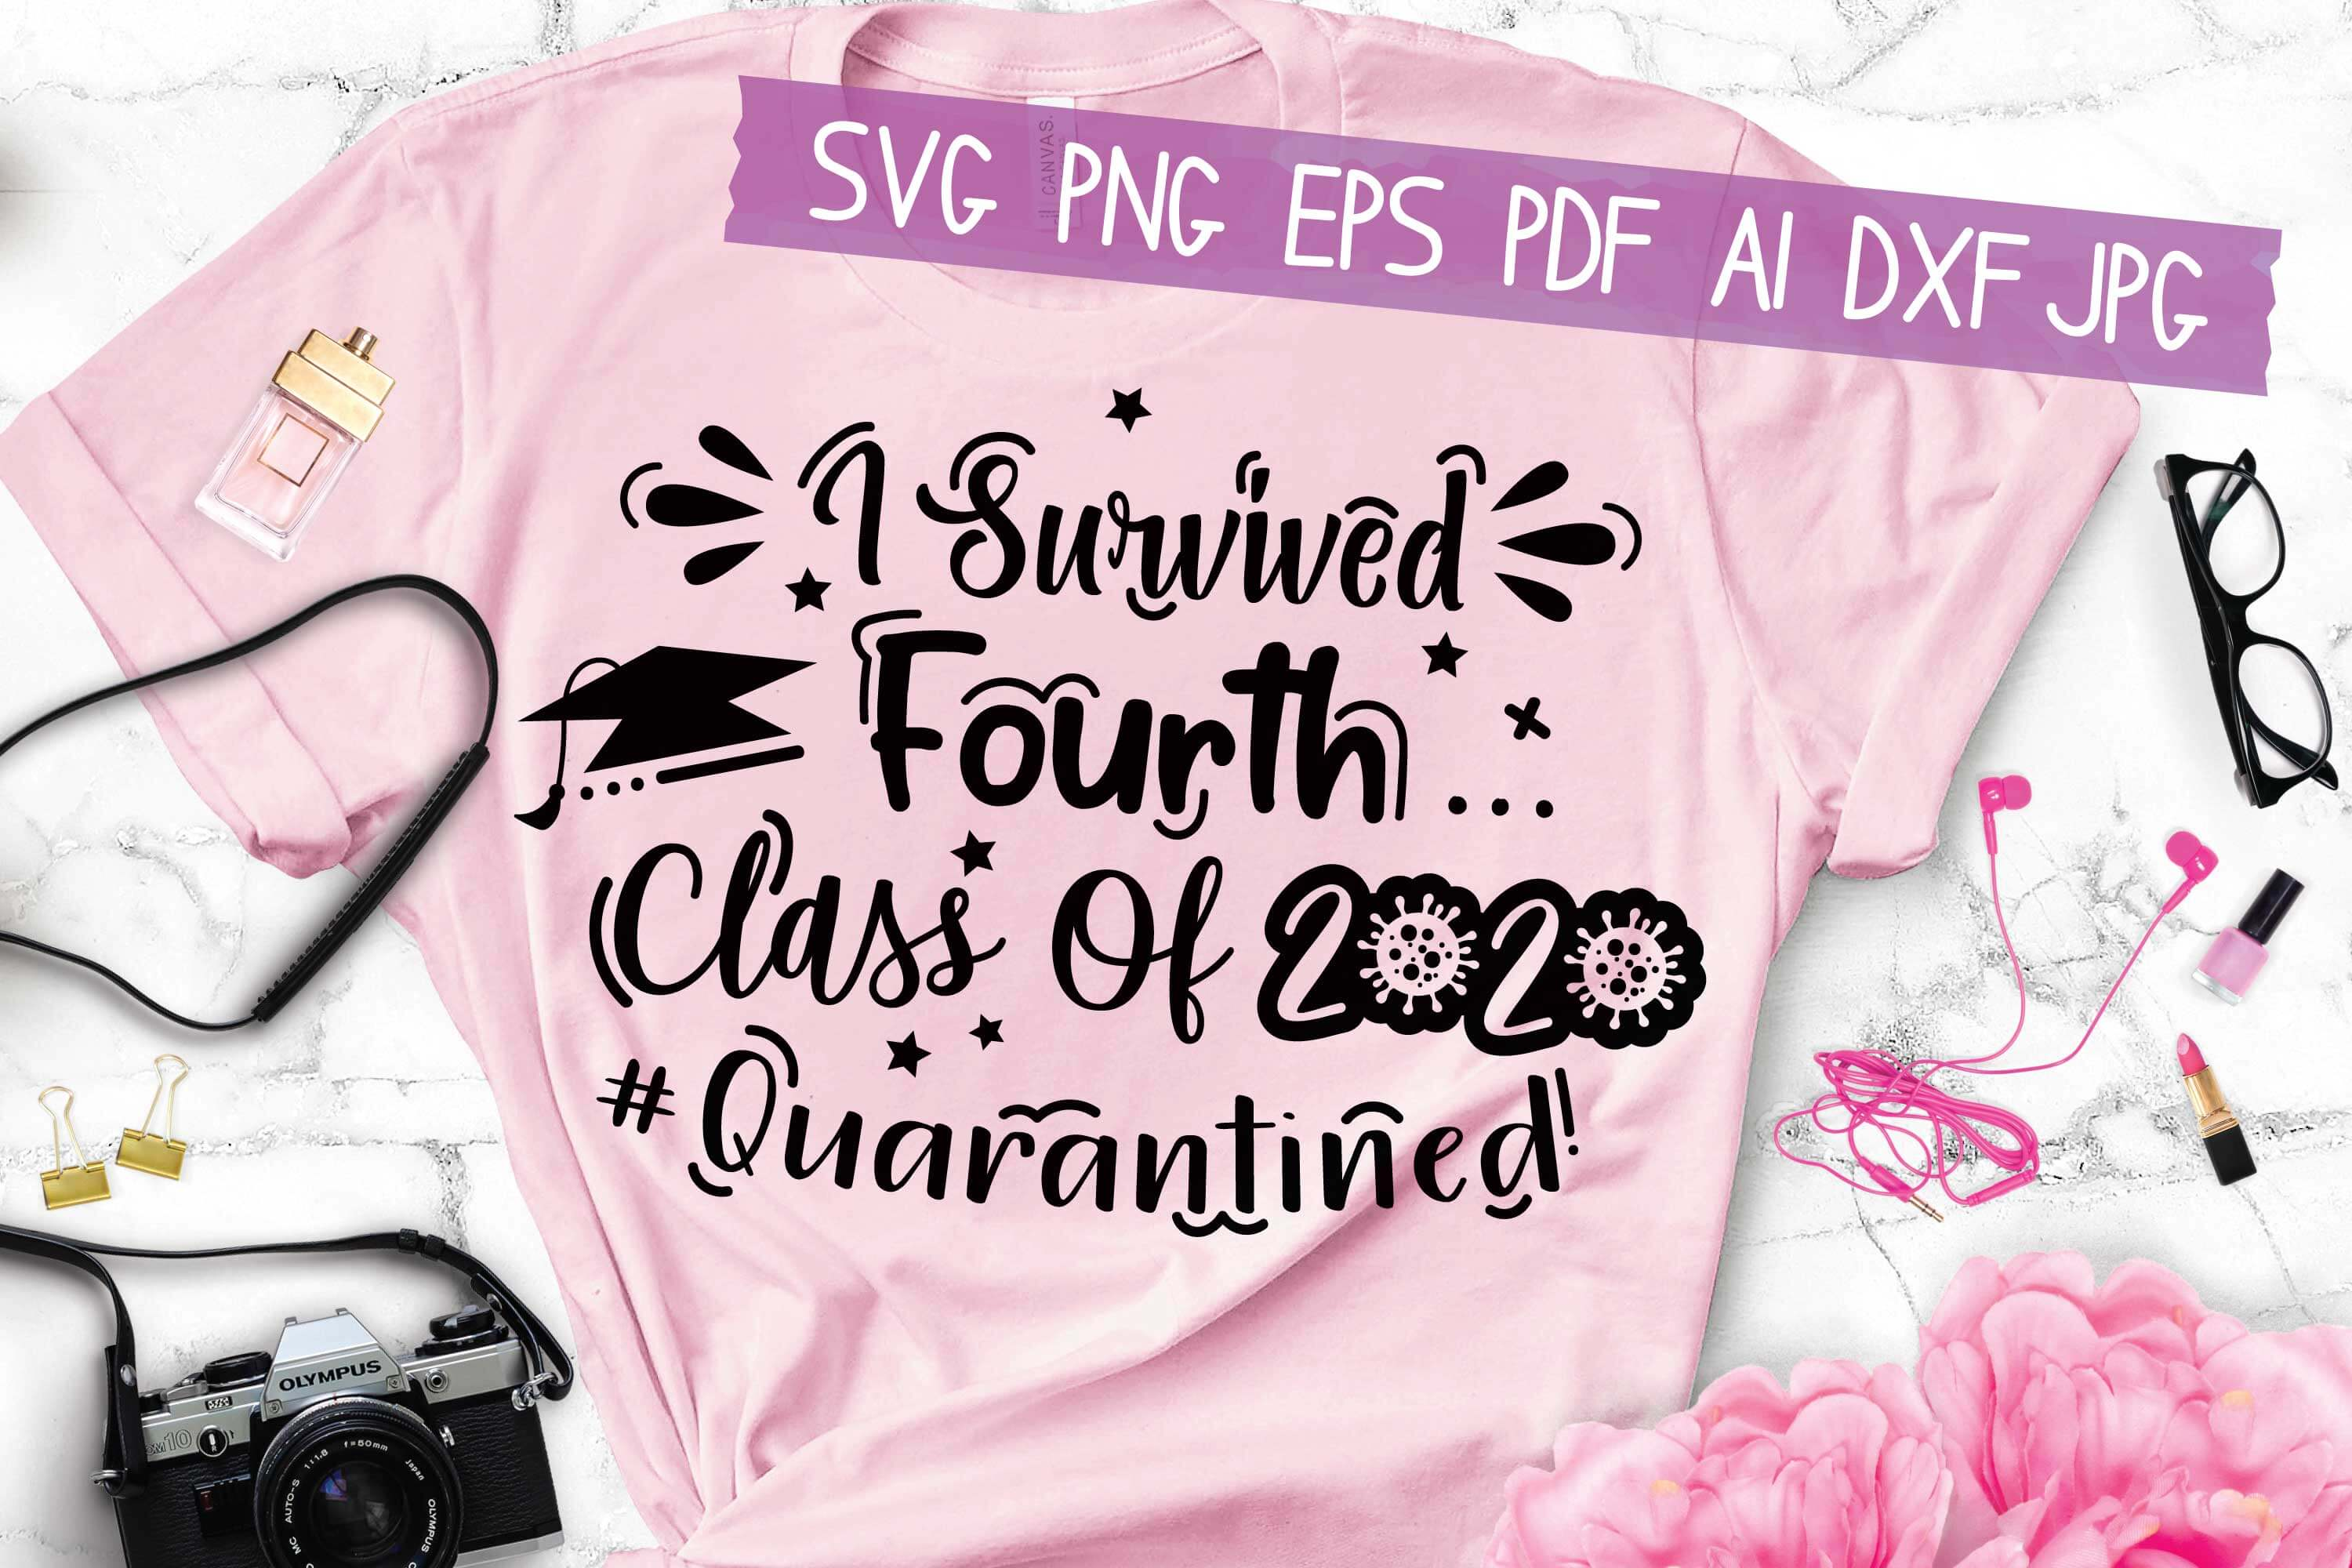 Download Free I Survived Fourth Class Of 2020 Graphic By Hkfk Studio for Cricut Explore, Silhouette and other cutting machines.